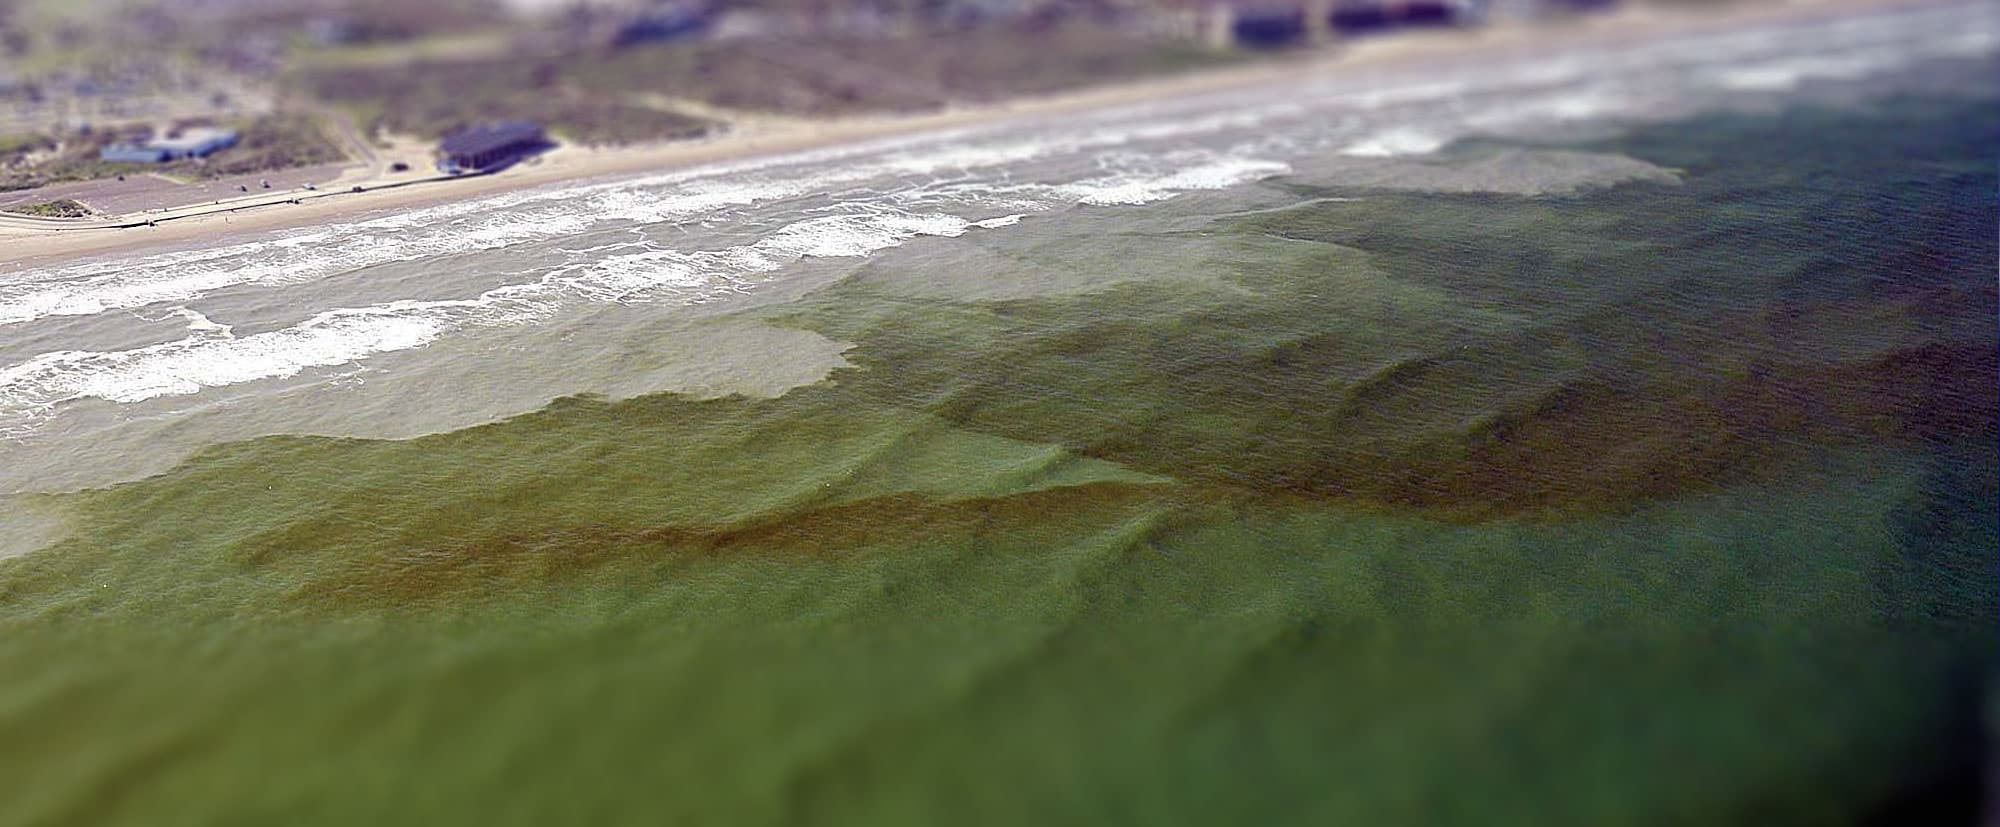 FIU Expert Panel to Discuss Florida Red Tide